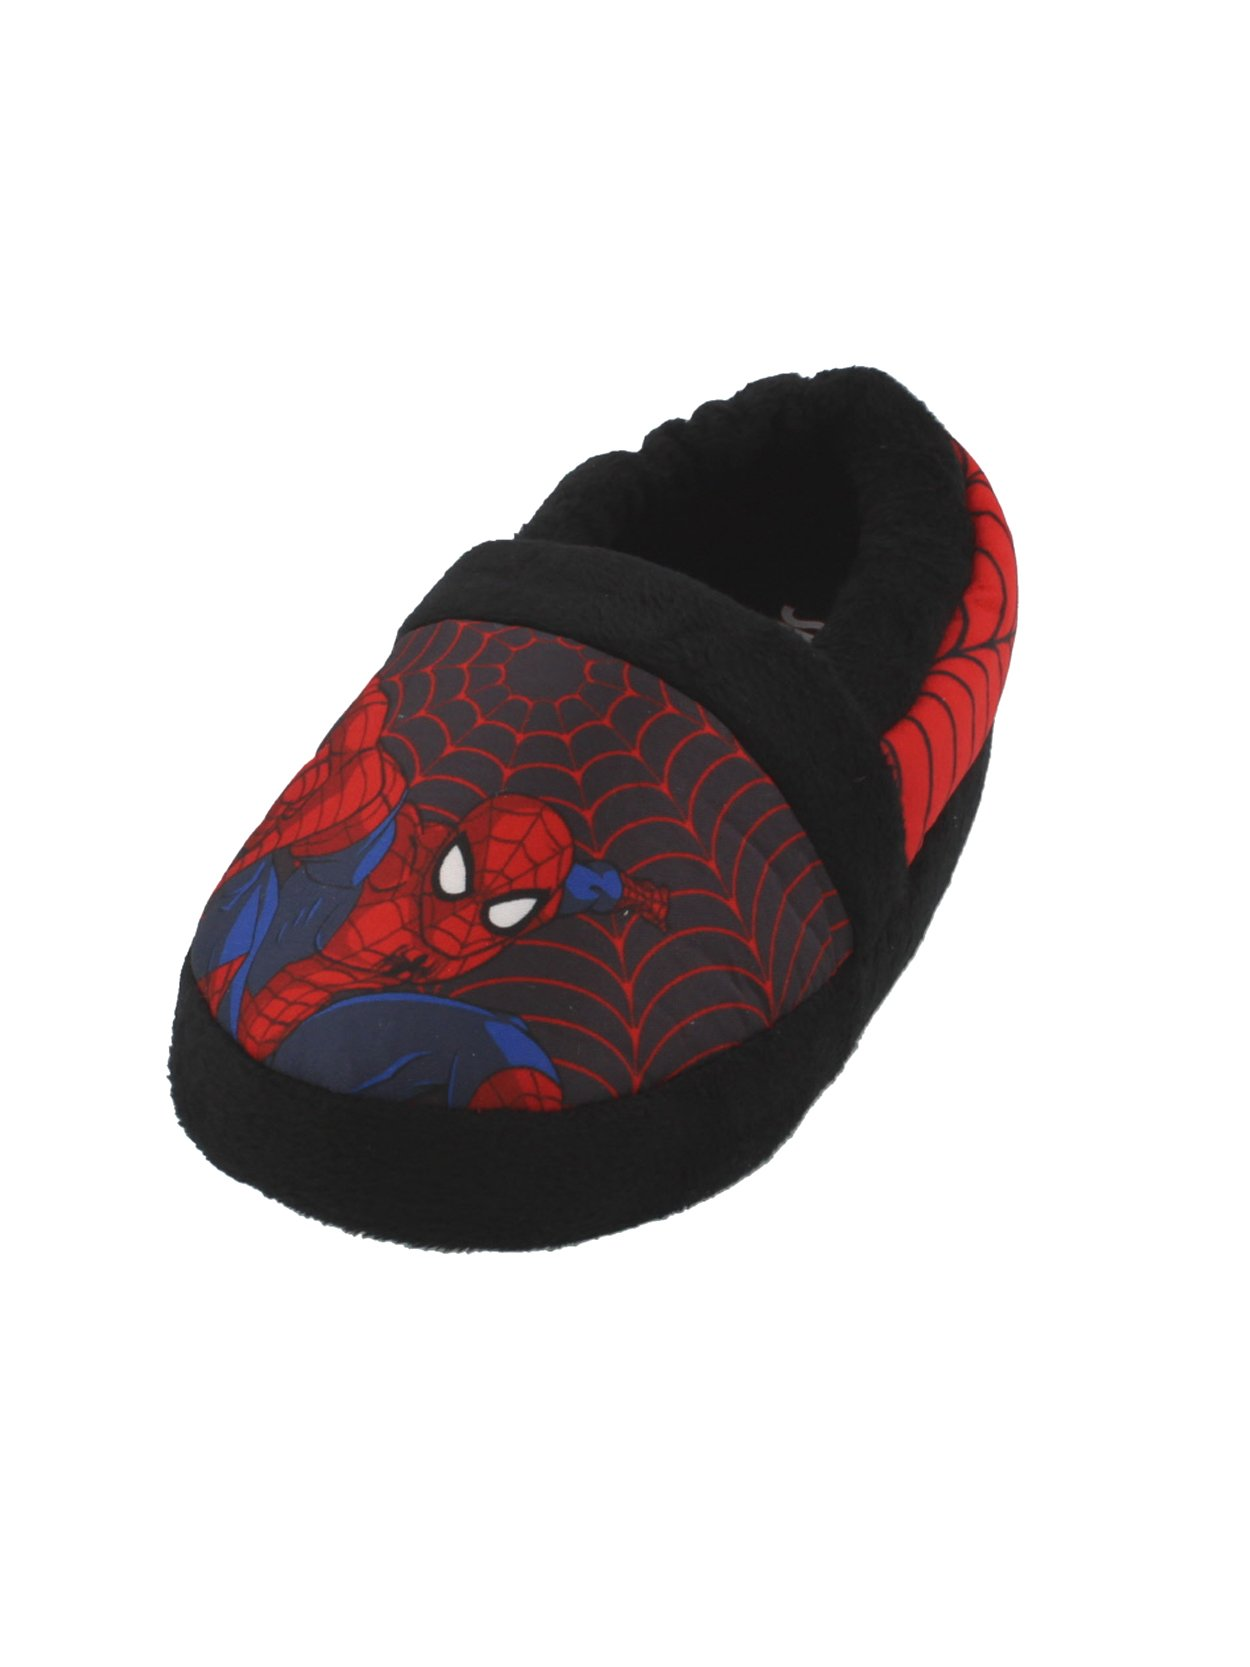 Spider-Man Boys Aline Slippers (11-12 M US Little Kid, Black/Red)